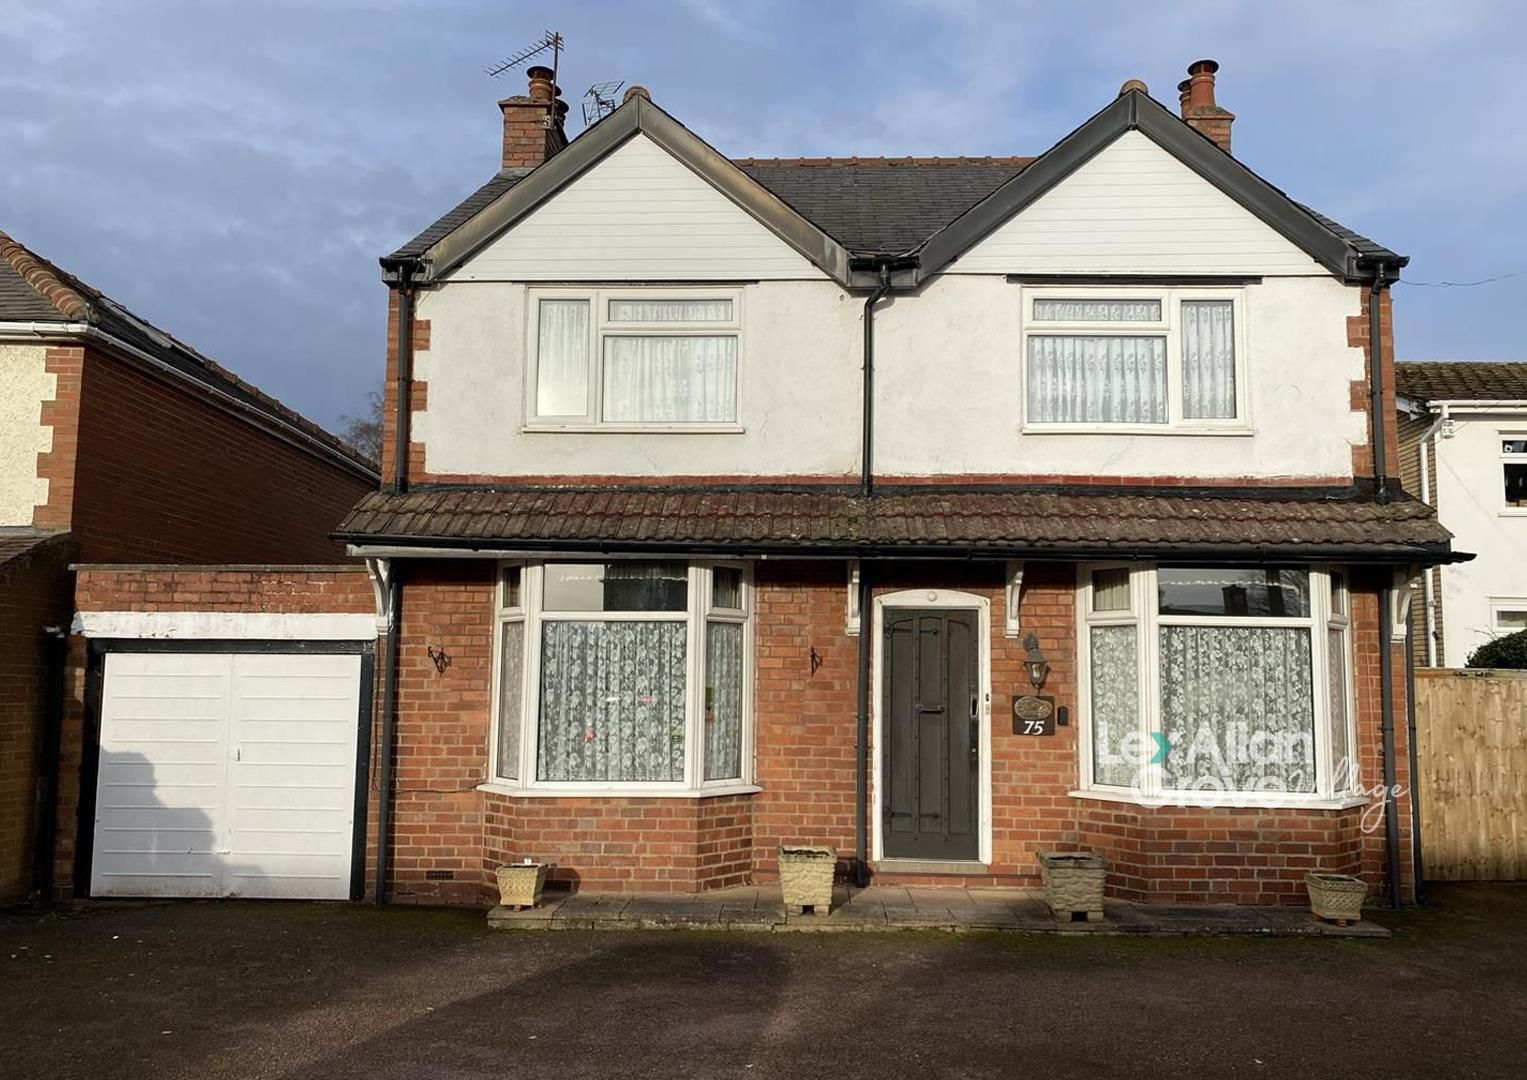 3 bed detached for sale in Blakedown, DY10